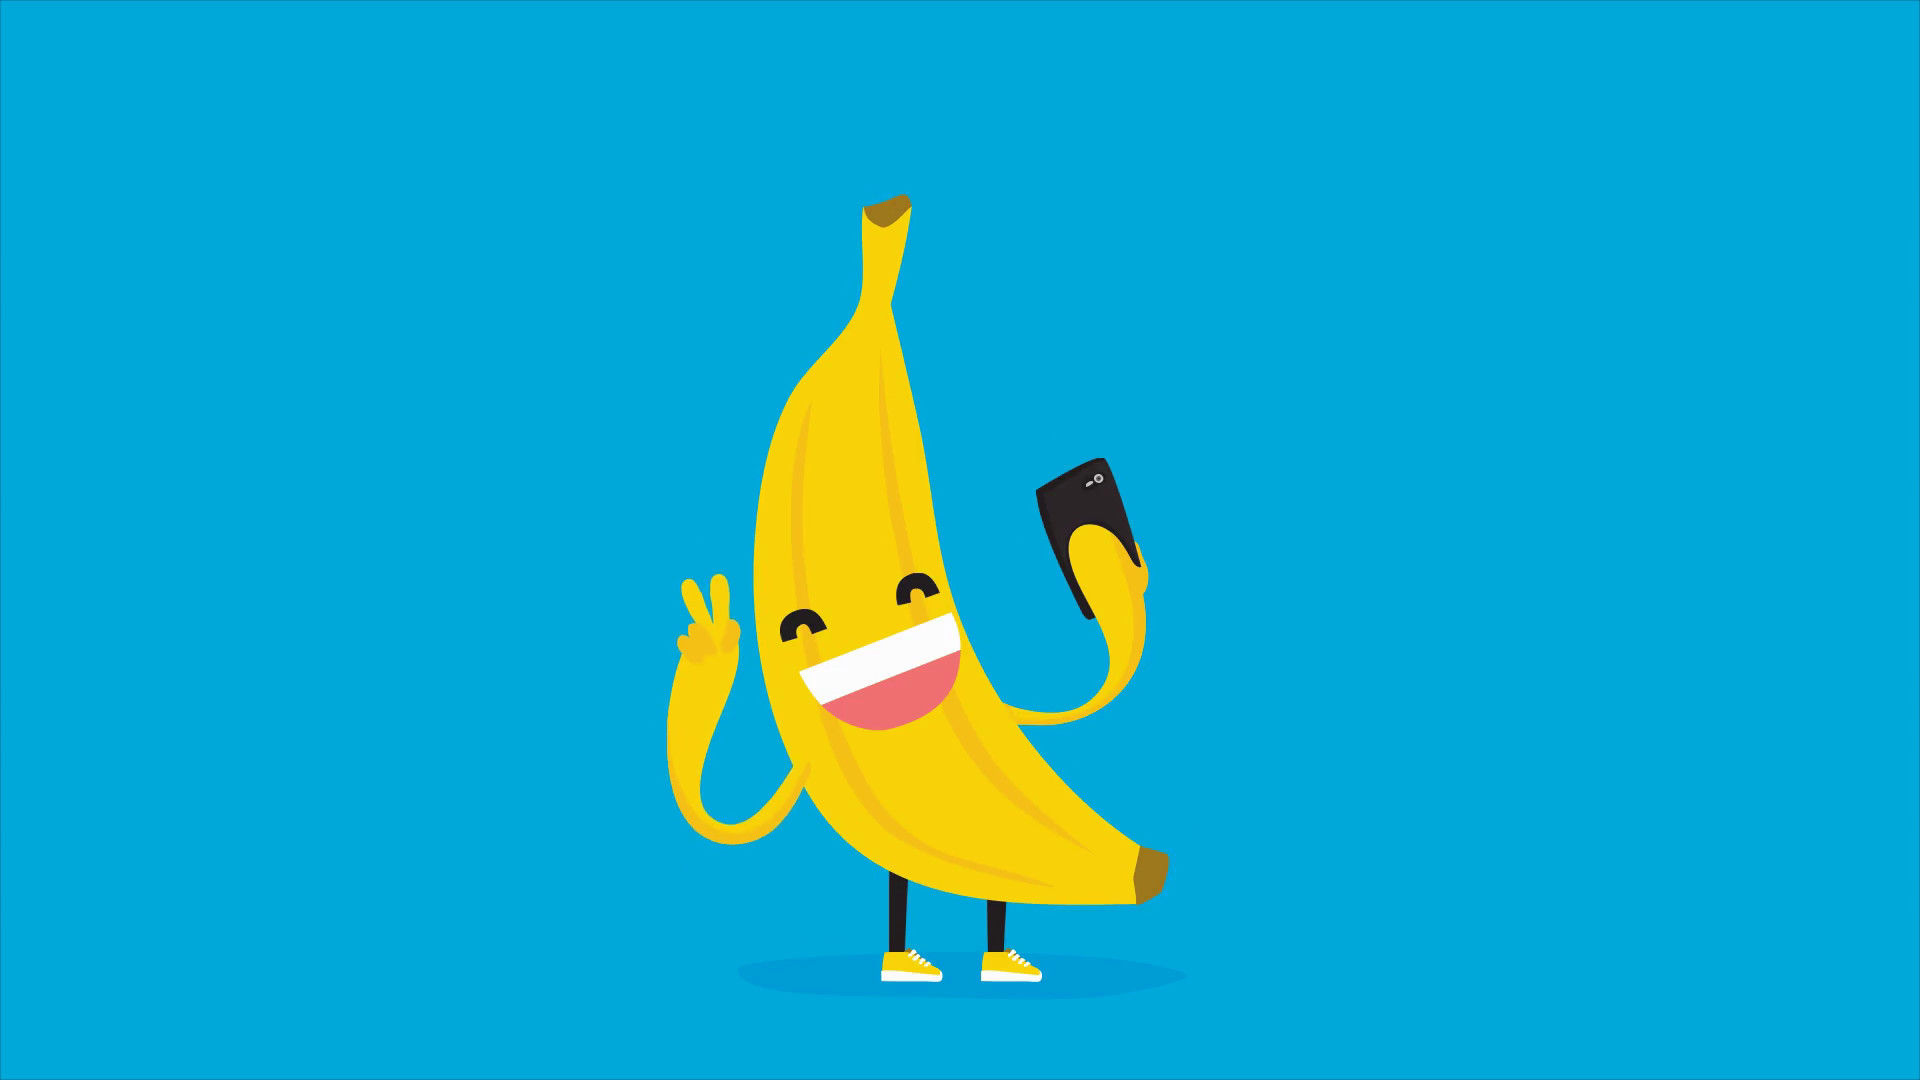 1920x1080 Cute kawaii banana taking selfie with mobile phone. HD cartoon animation on blue  background. Stock Video Footage - Storyblocks Video